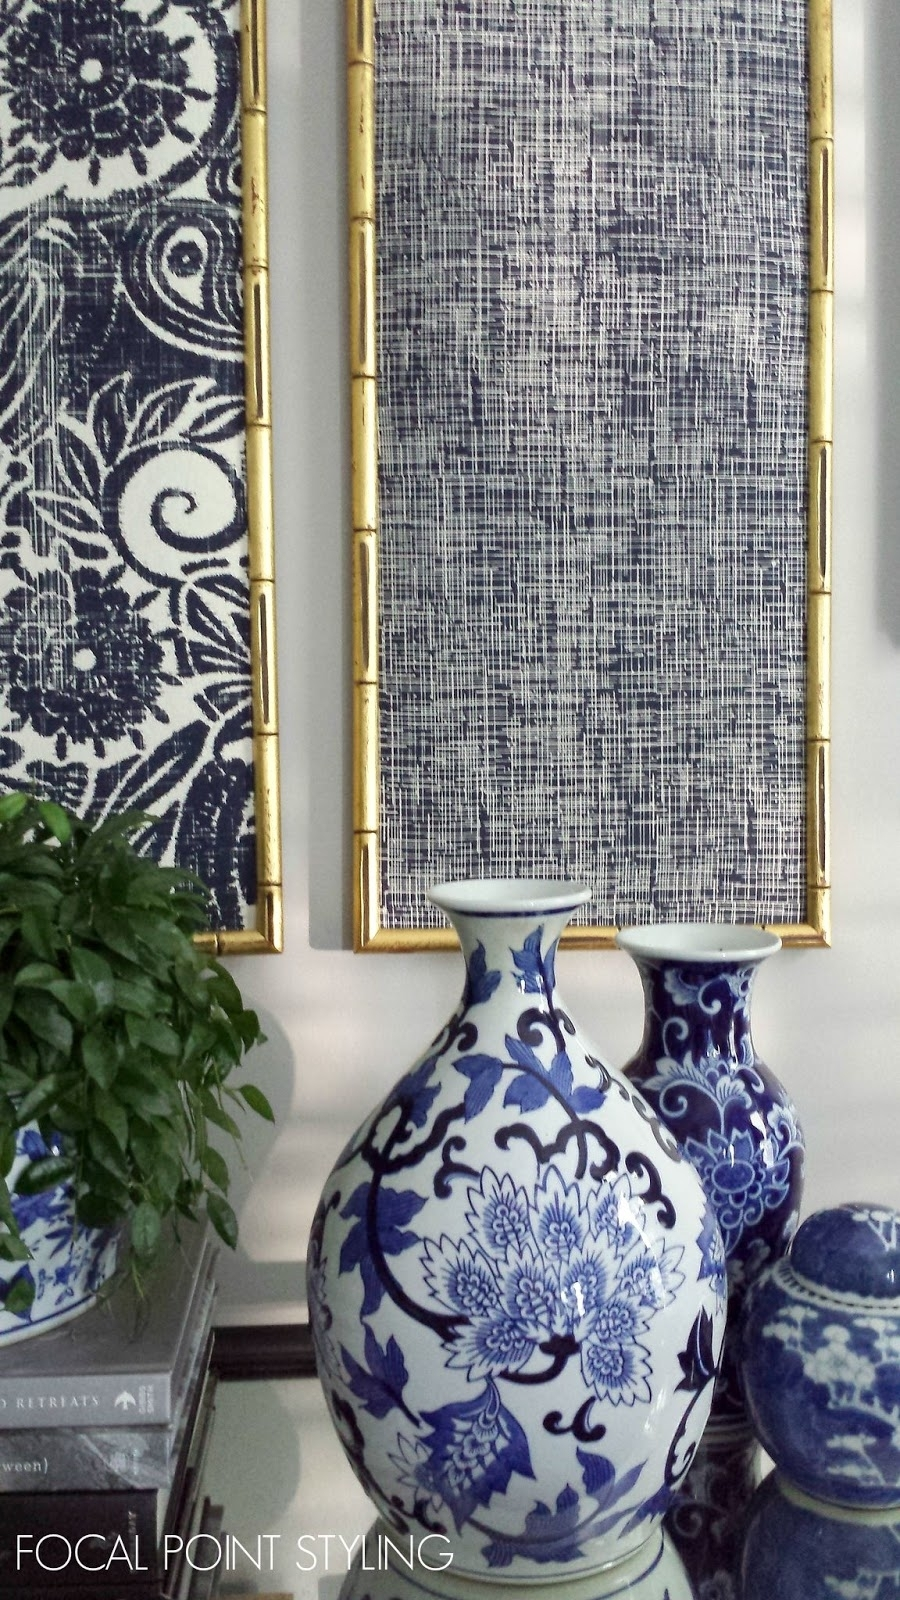 Focal Point Styling: Diy Indigo Wall Art With Framed Fabric Inside Current Fabric Wall Art Panels (Gallery 9 of 15)